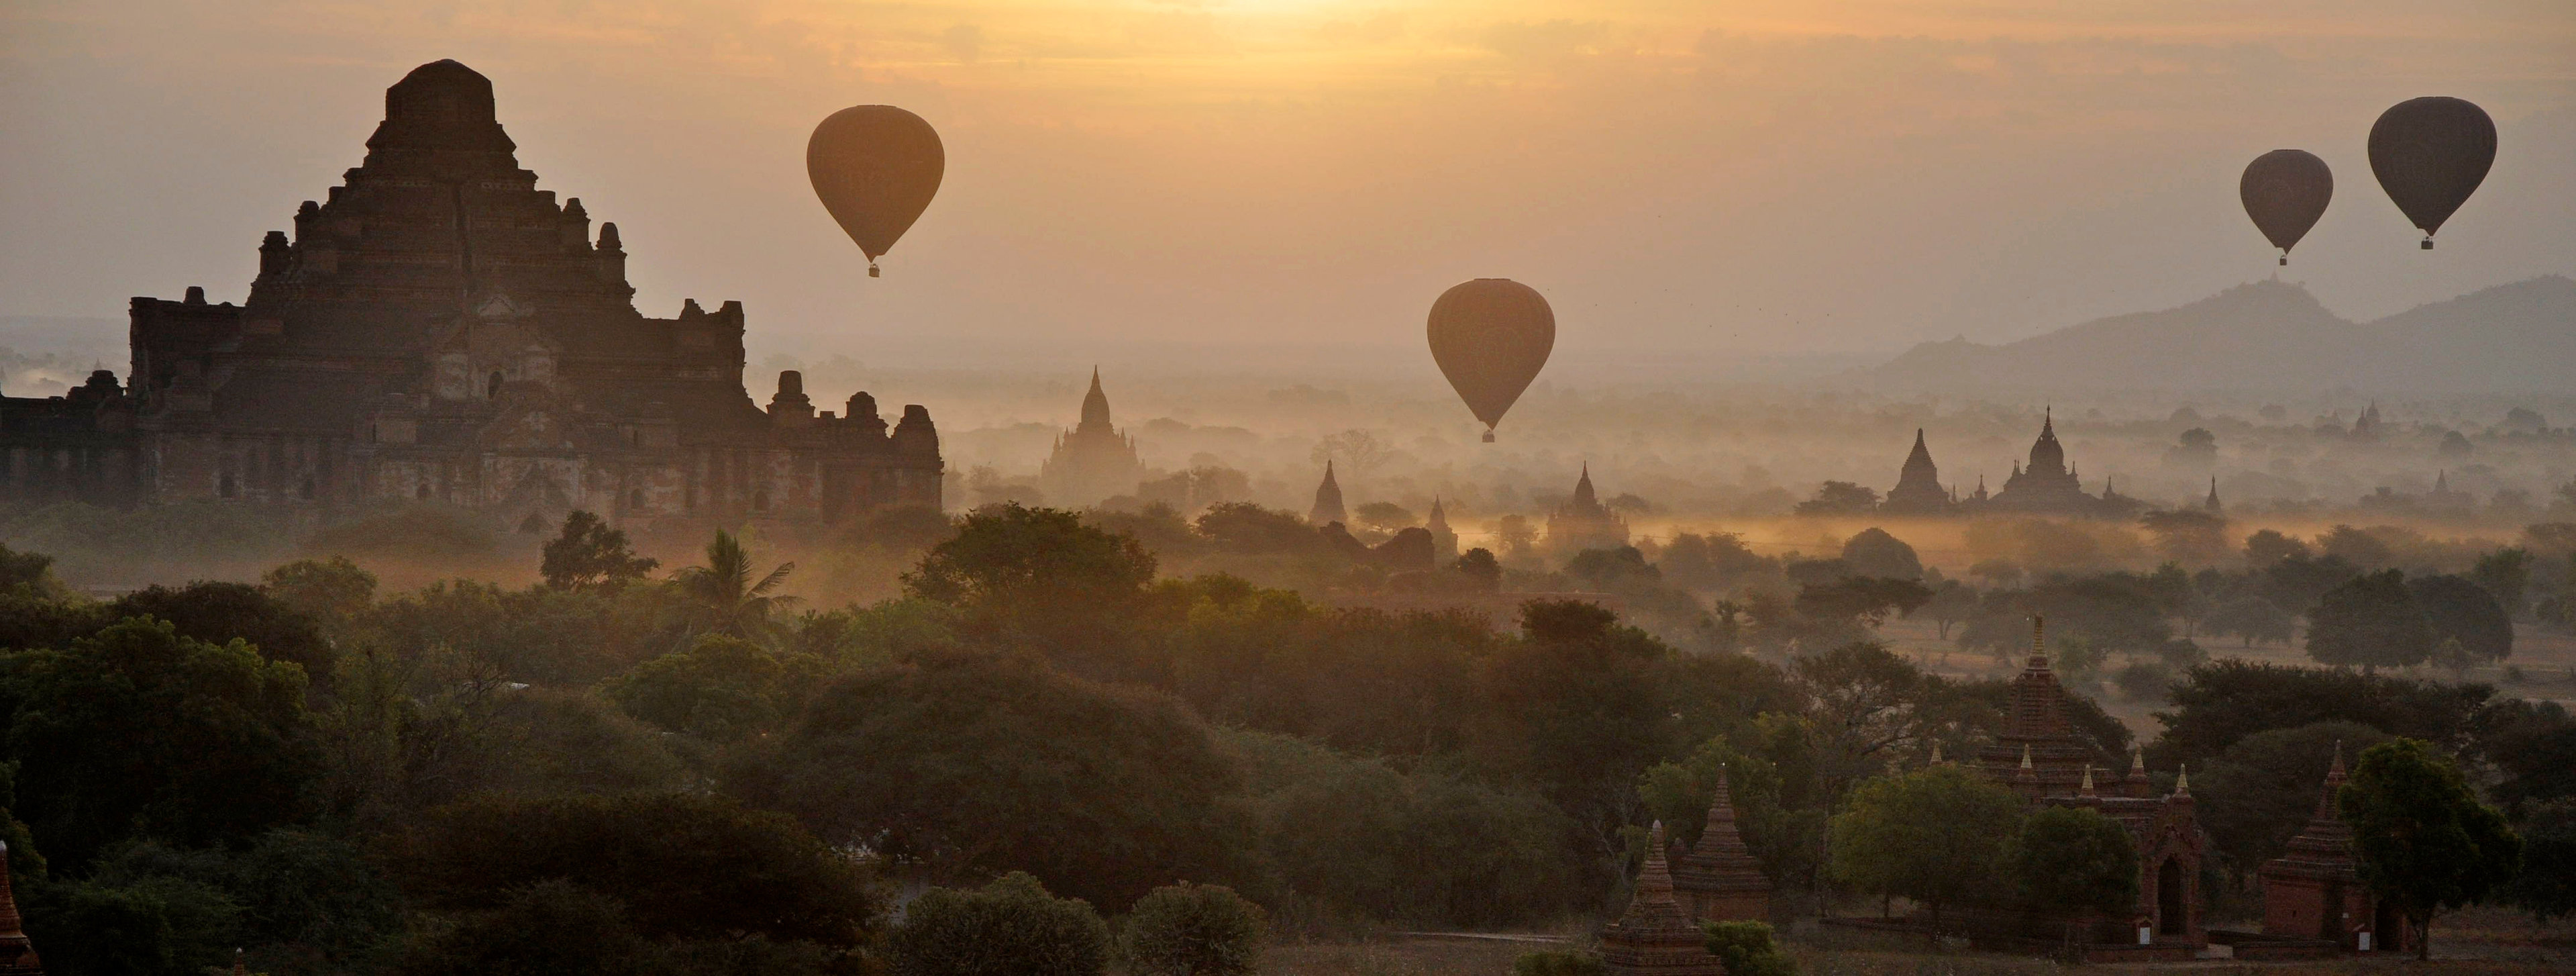 Hot Air Balloons at Sunrise over Bagan, Burma